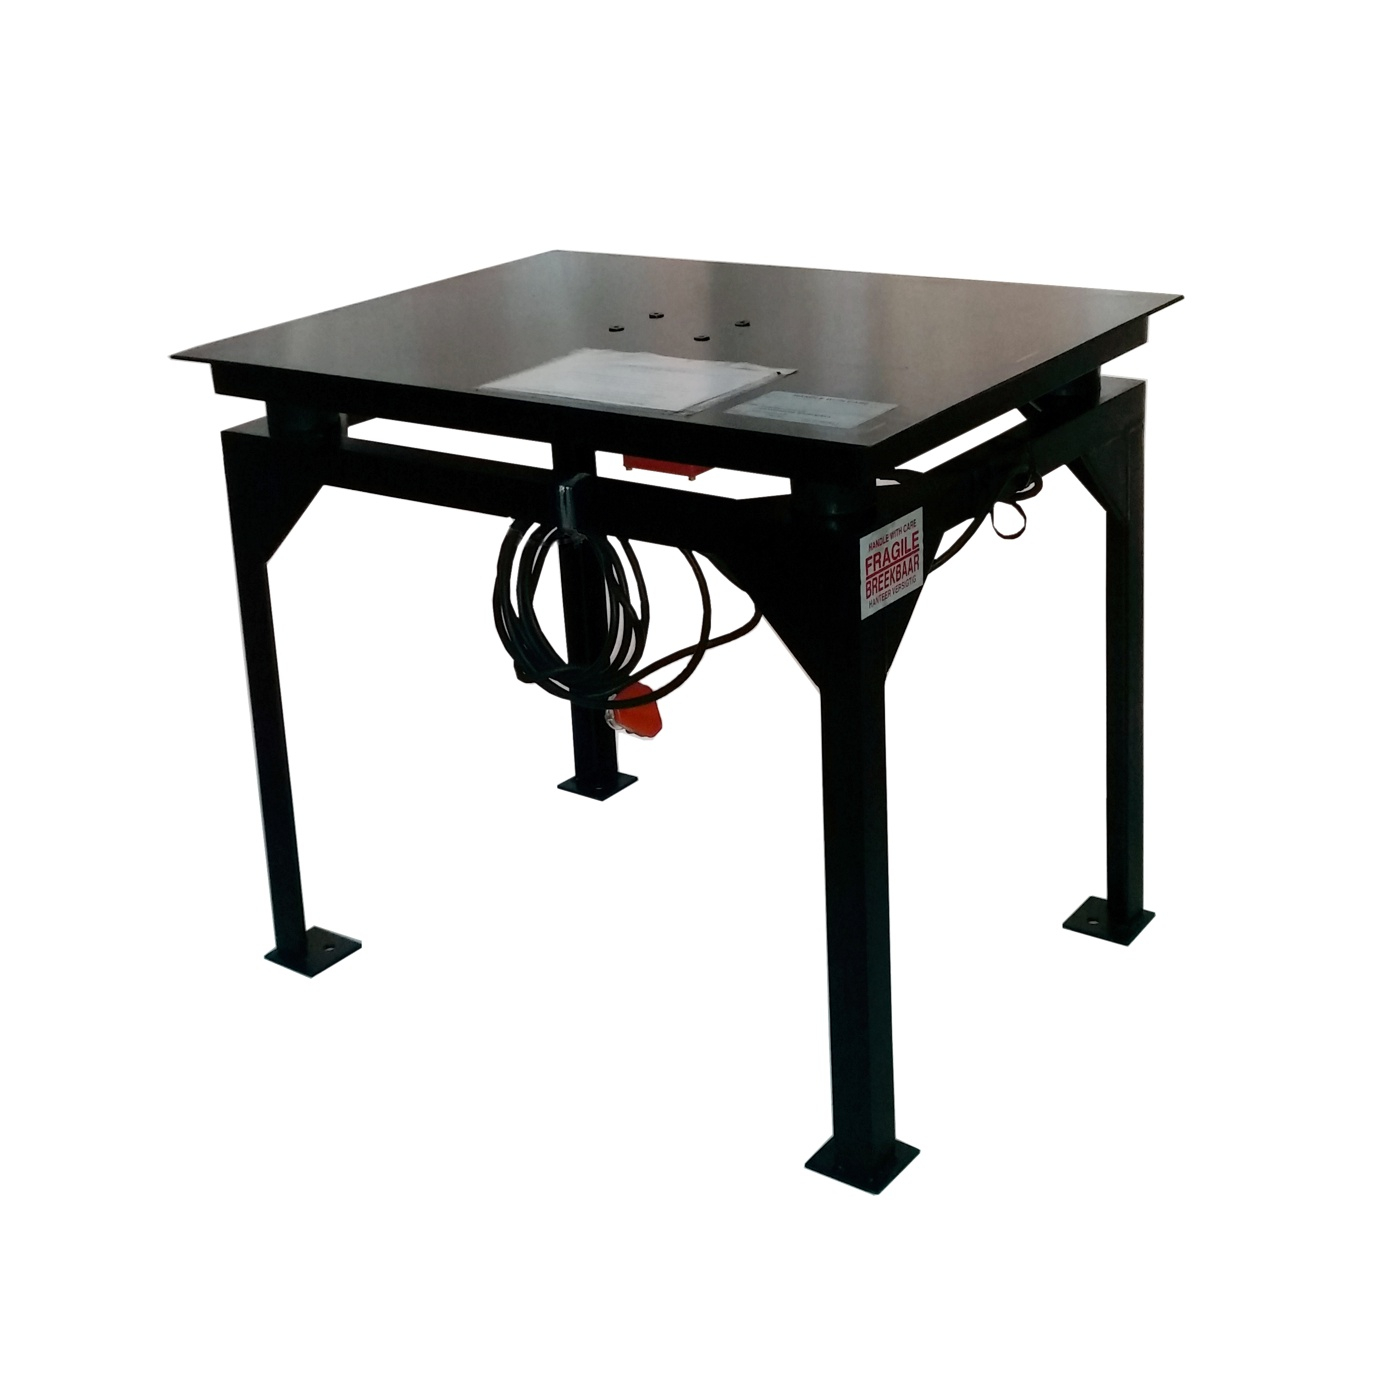 Vibrating Vibration Table used for Concrete Product manufacturing